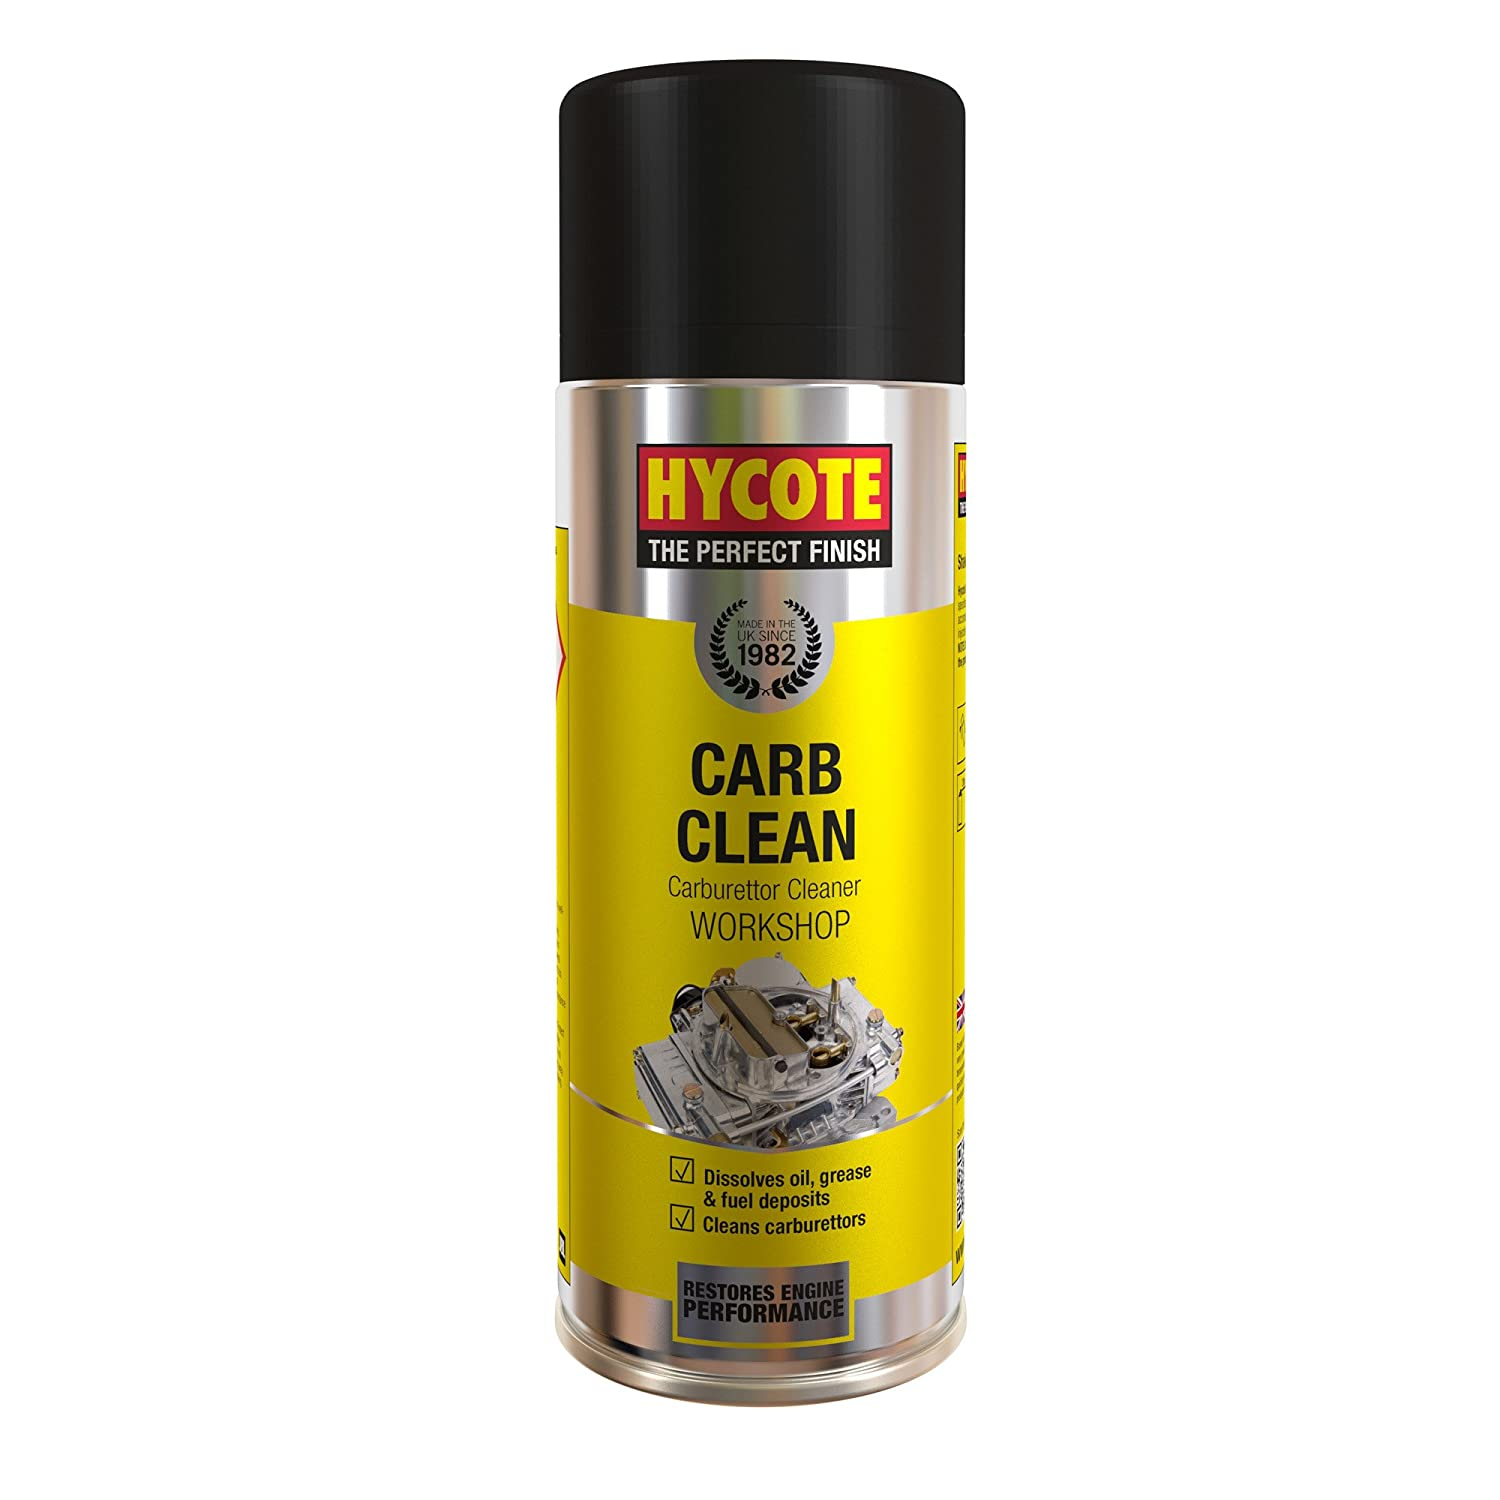 HYCOTE Maintenance Carb Cleaner, 400ml XUK303